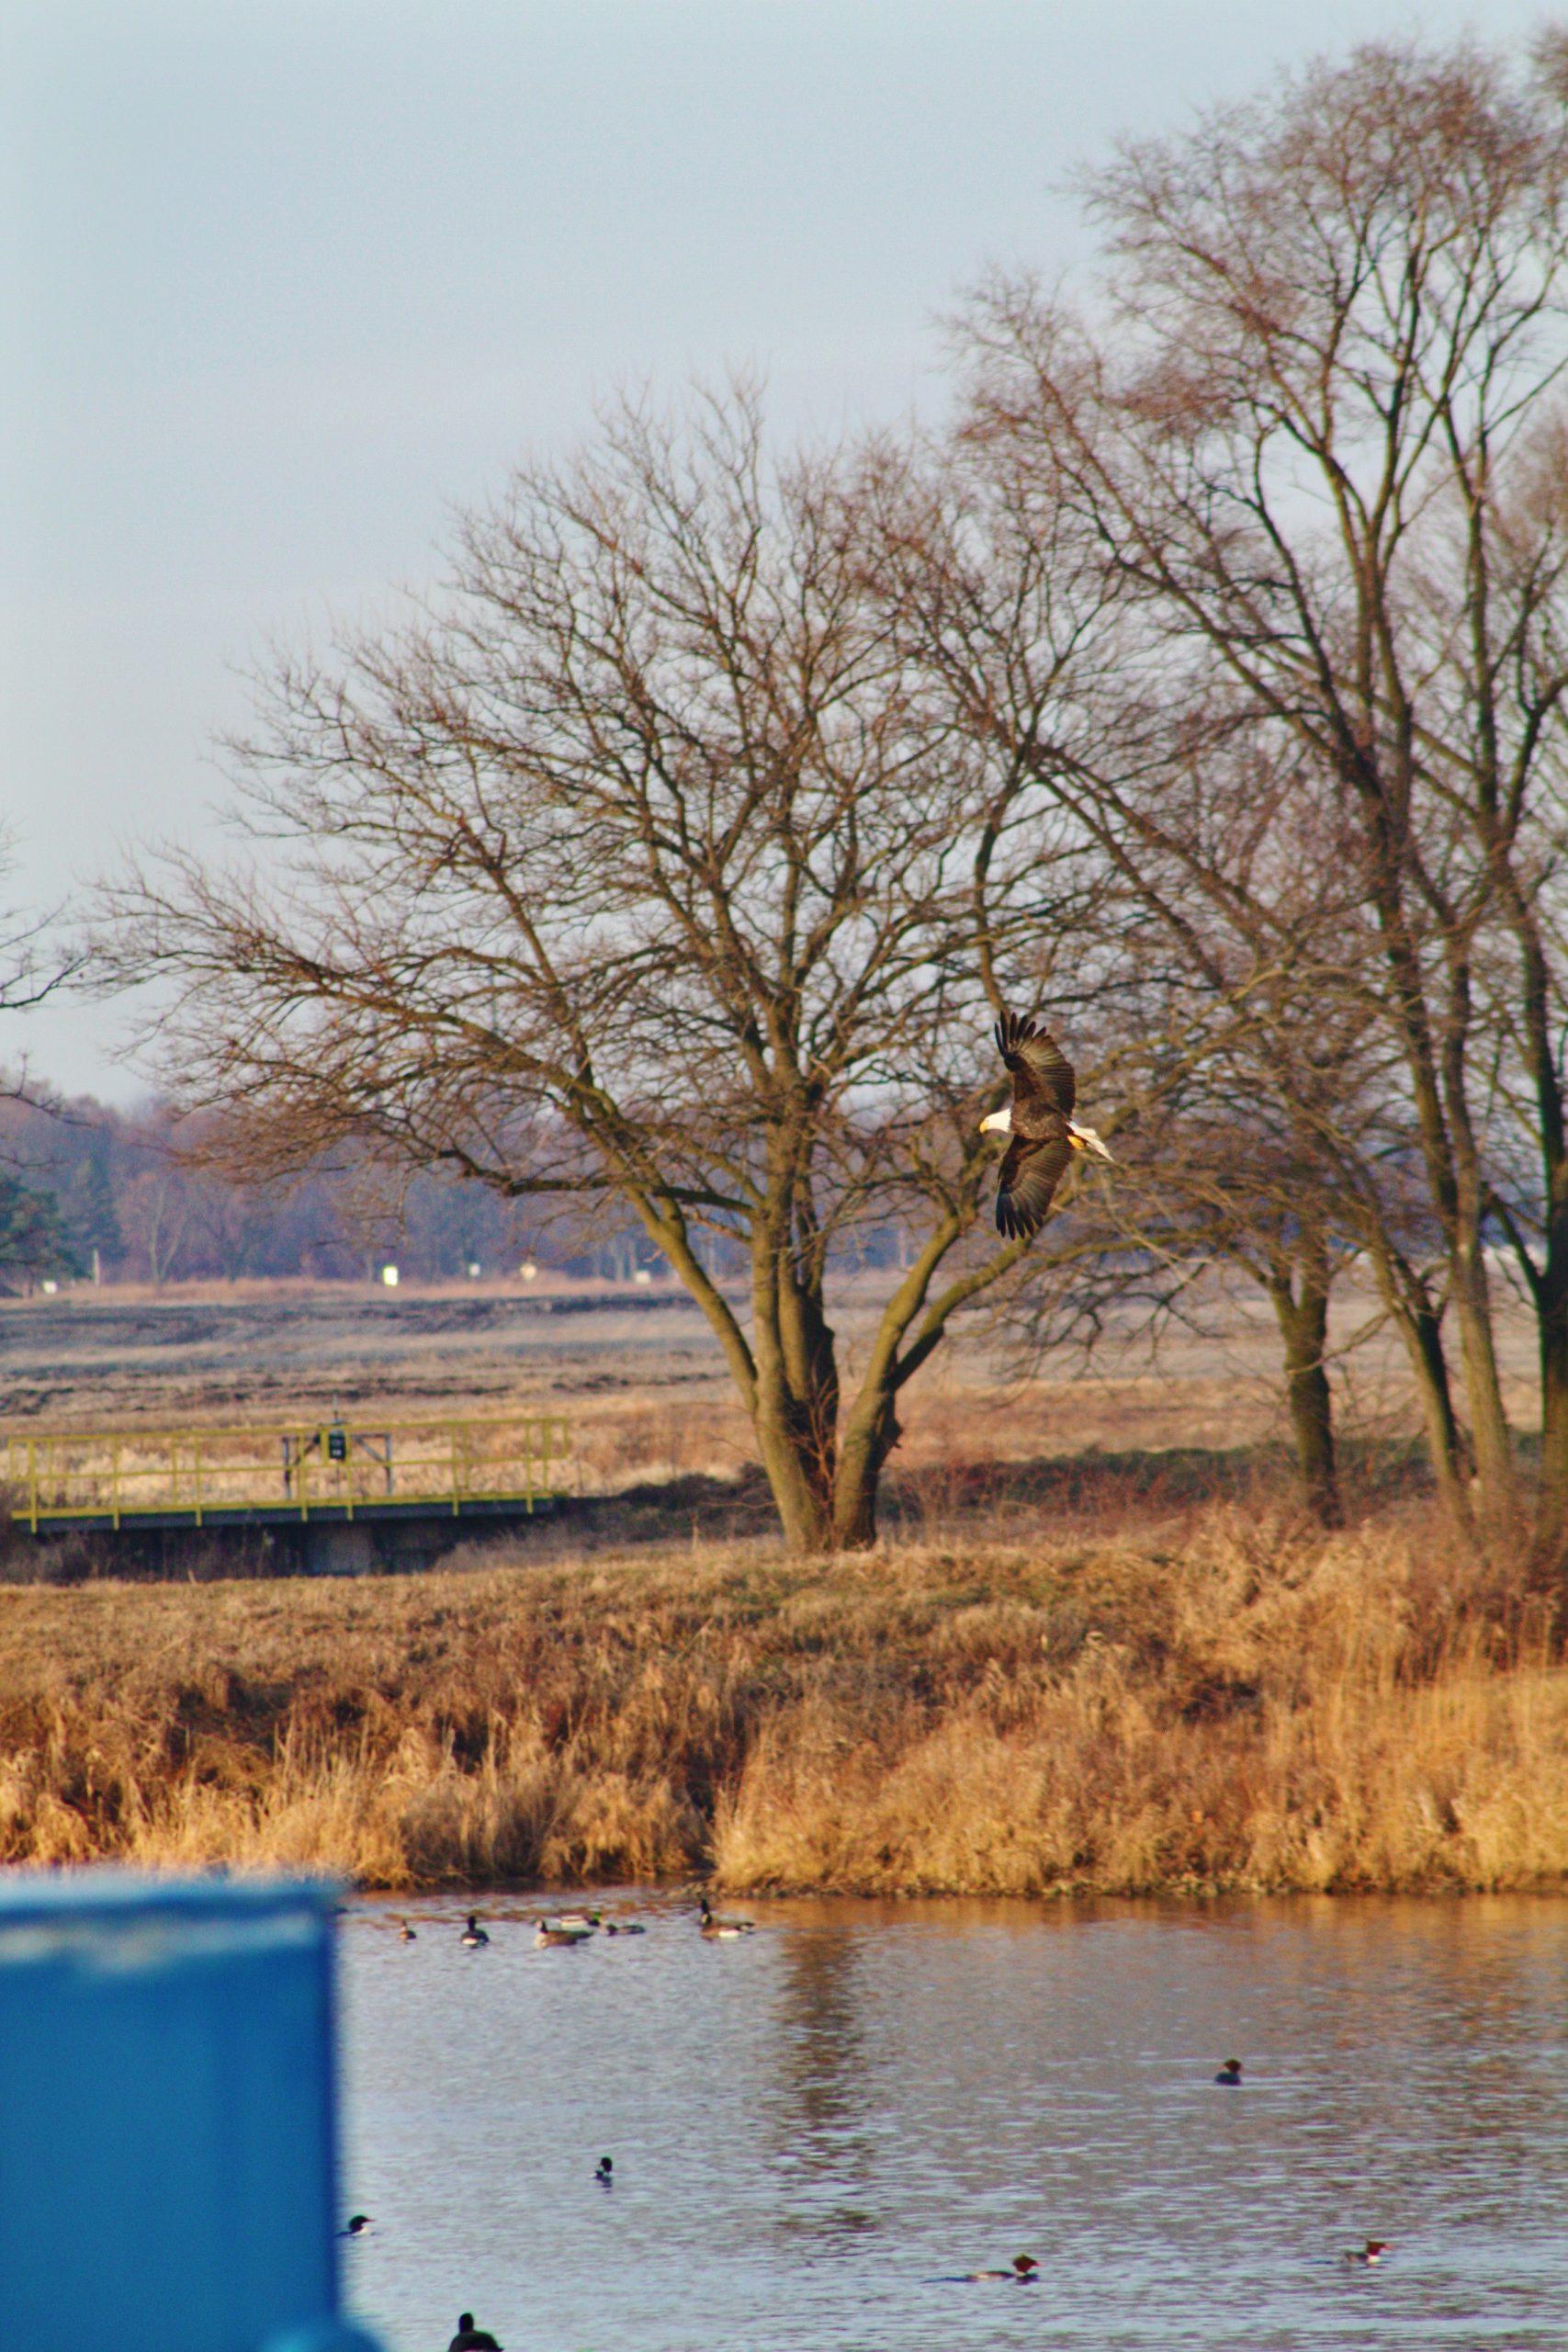 (1/4) Two bald eagles were fishing at Casey's Pond just after sunrise on Dec. 26, 2019. nature, wildlife, animal, bird, eagle Photo: Hunter Hall